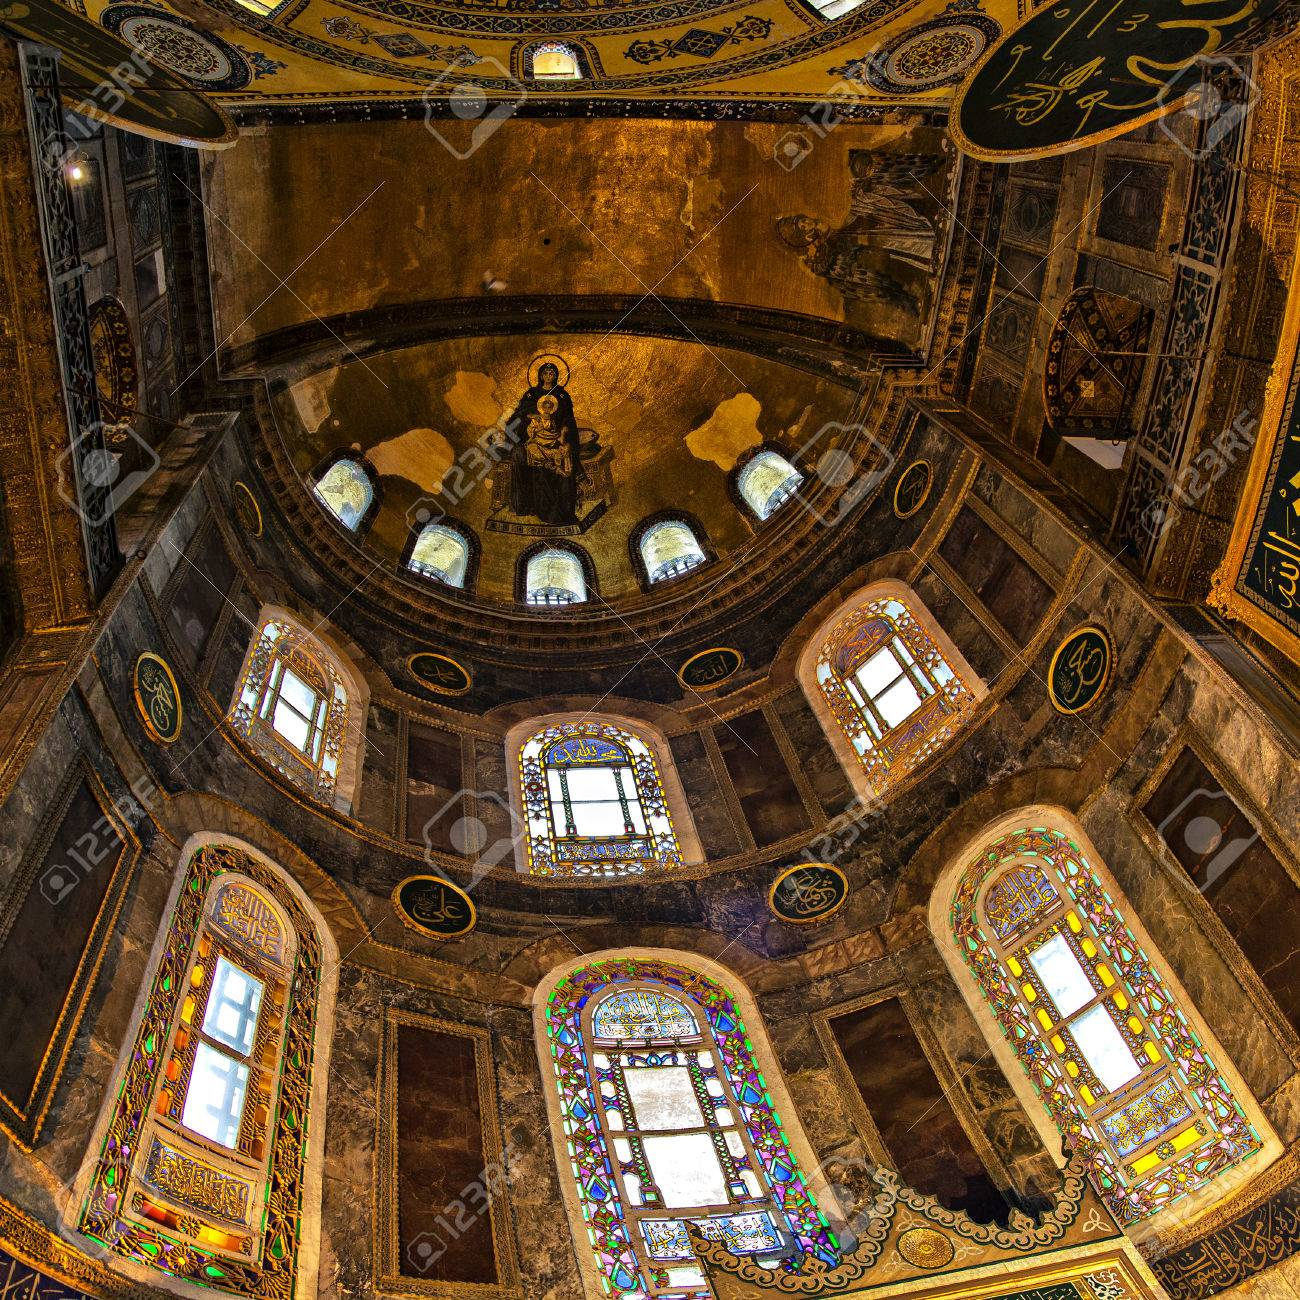 http://previews.123rf.com/images/feferoni/feferoni1502/feferoni150200006/36220238-Image-of-Hagia-Sofia-inside-Istanbul-Turkey--Stock-Photo.jpg